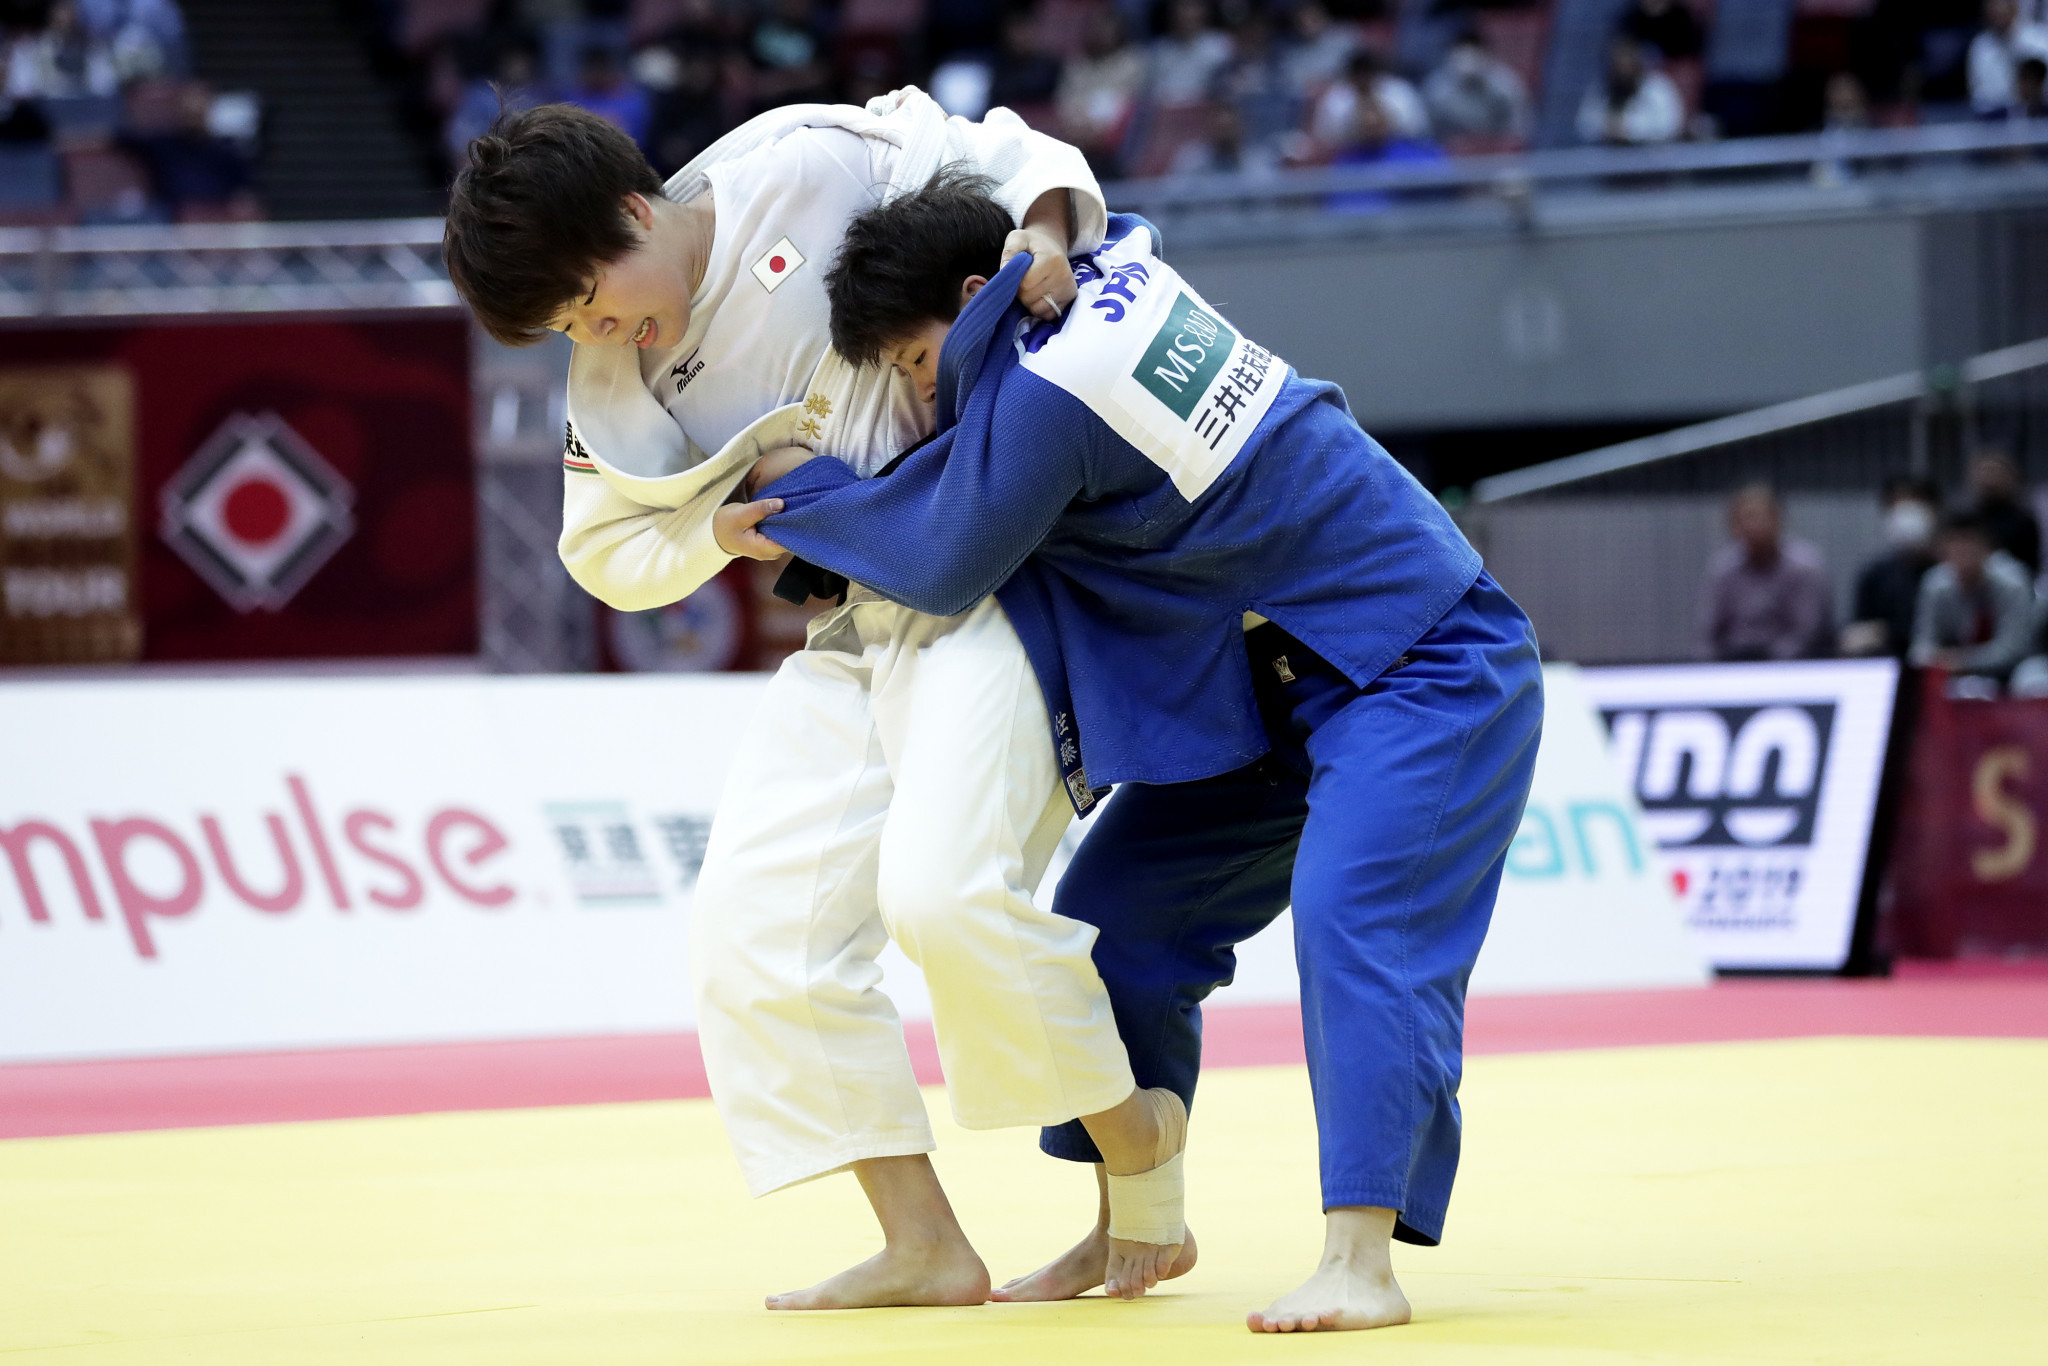 Triple gold for hosts as IJF Osaka Grand Slam concludes in Japan